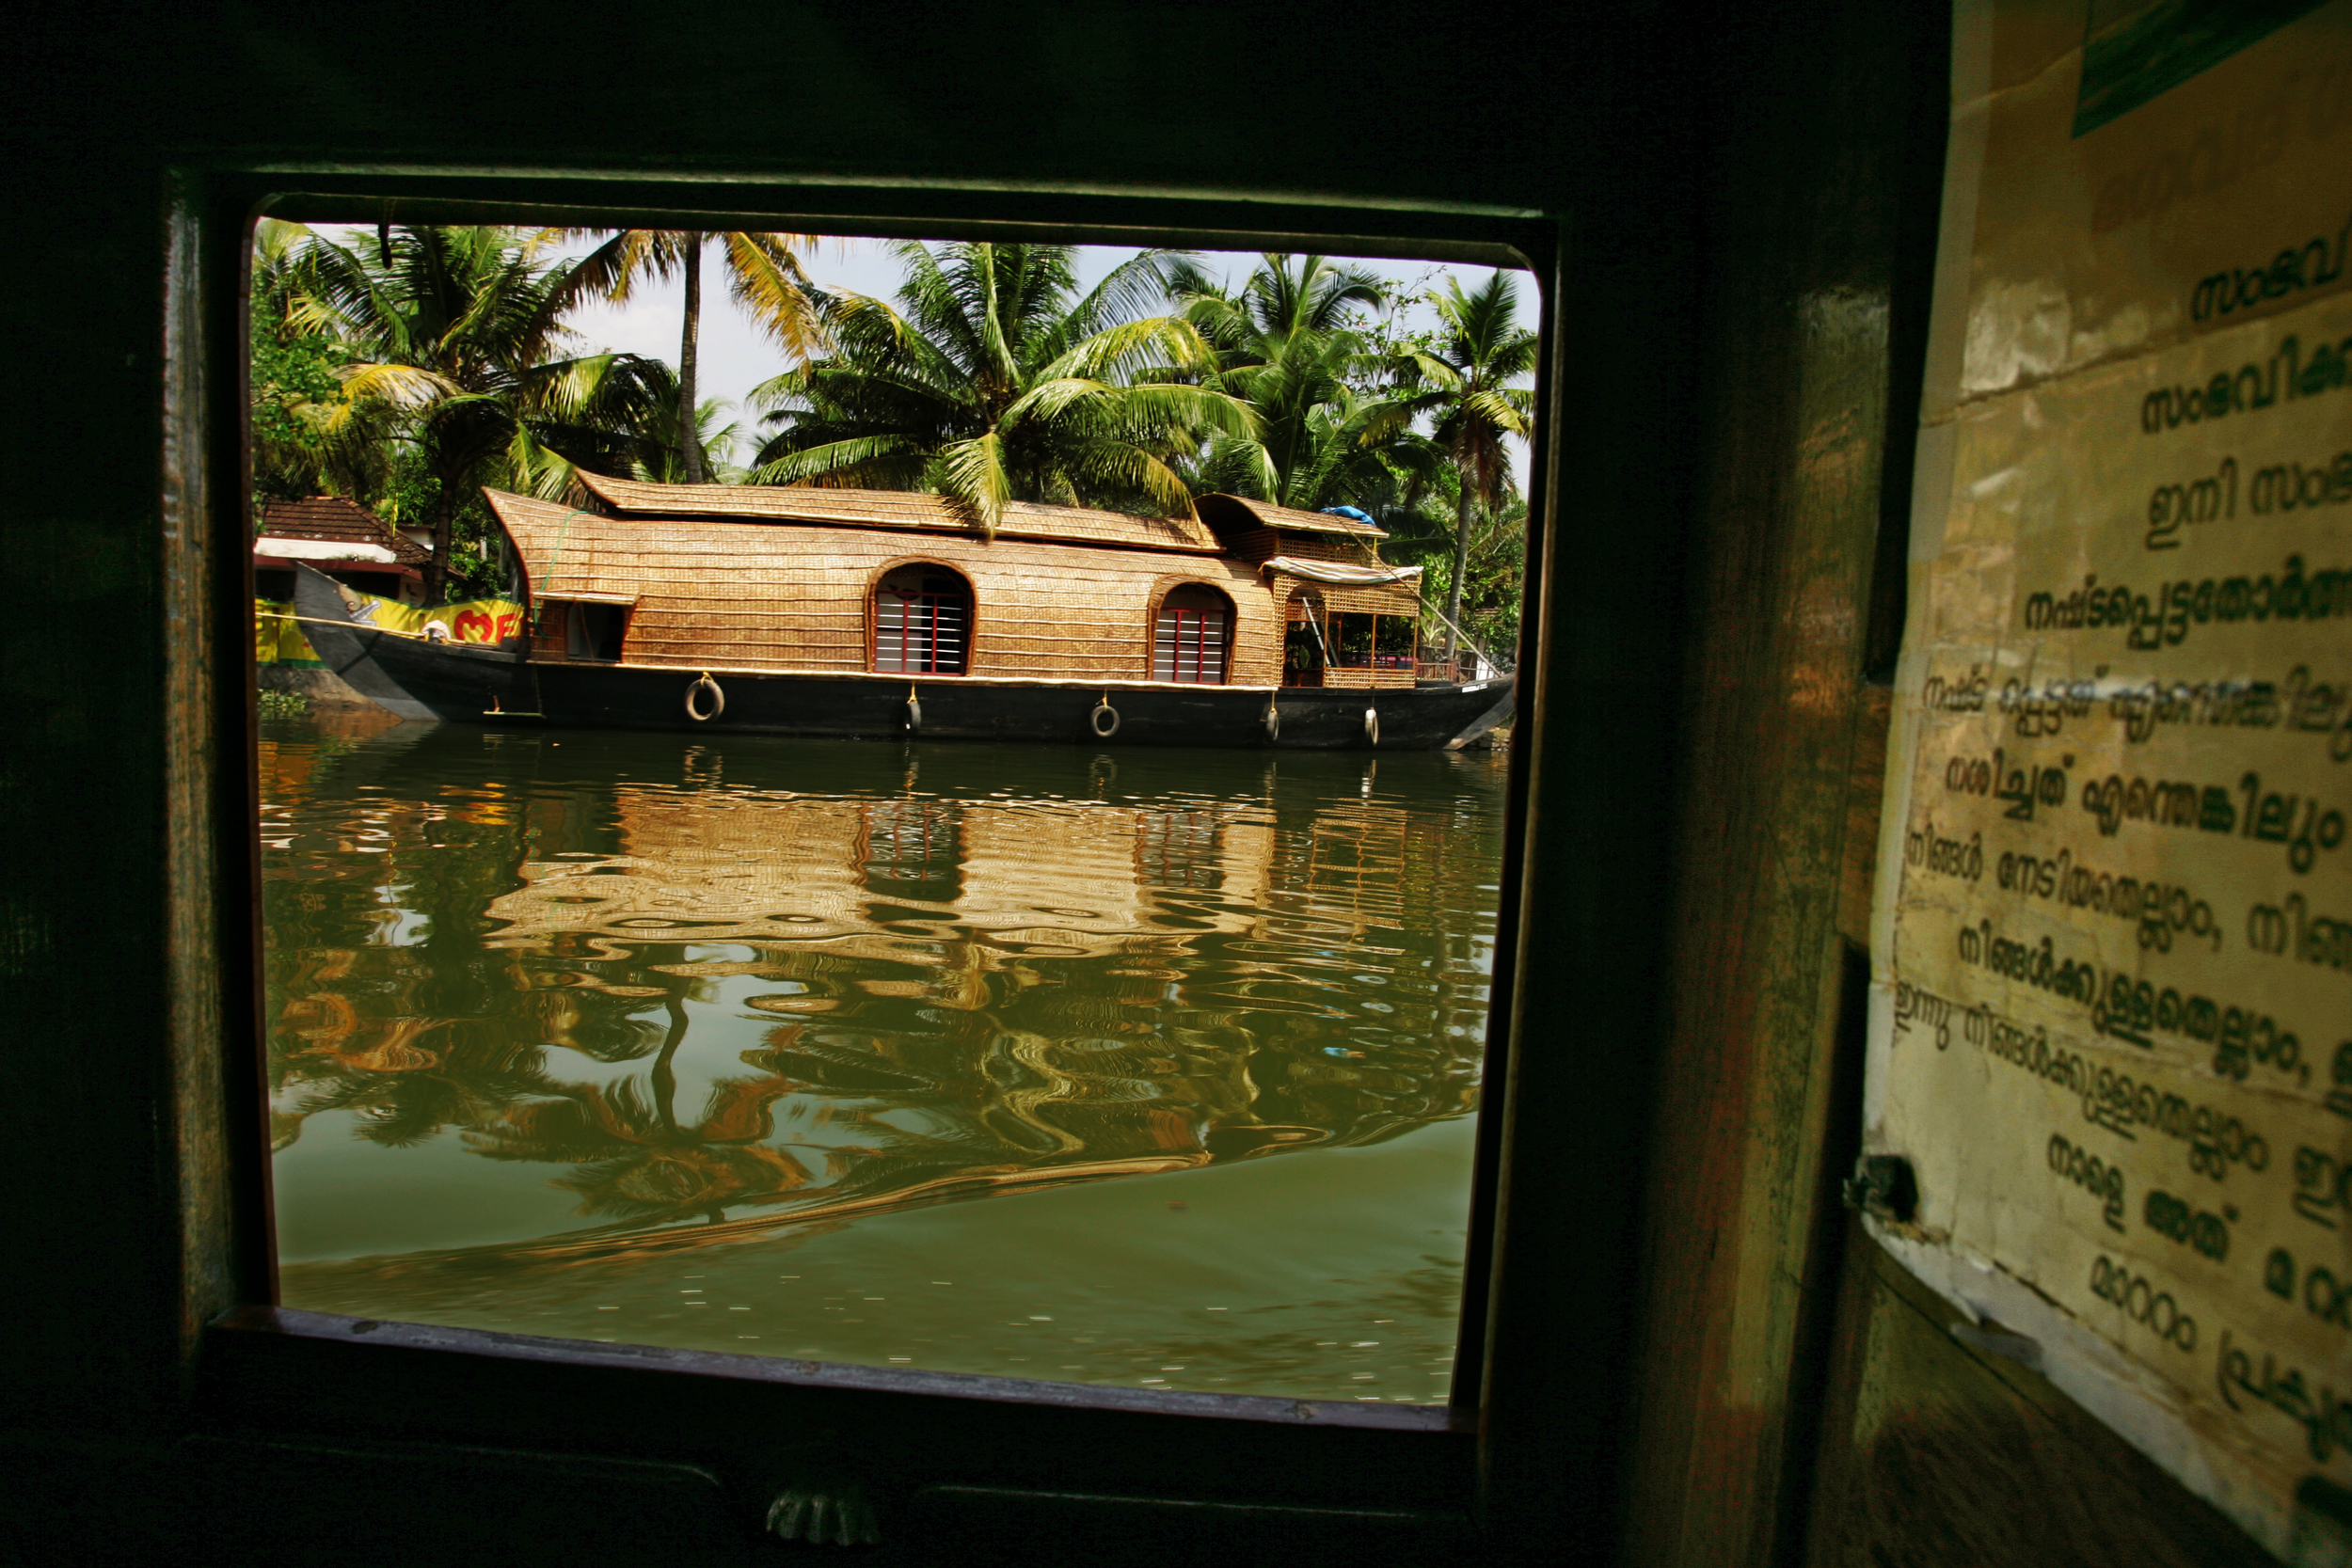 Houseboat on the backwaters in Kerala, India